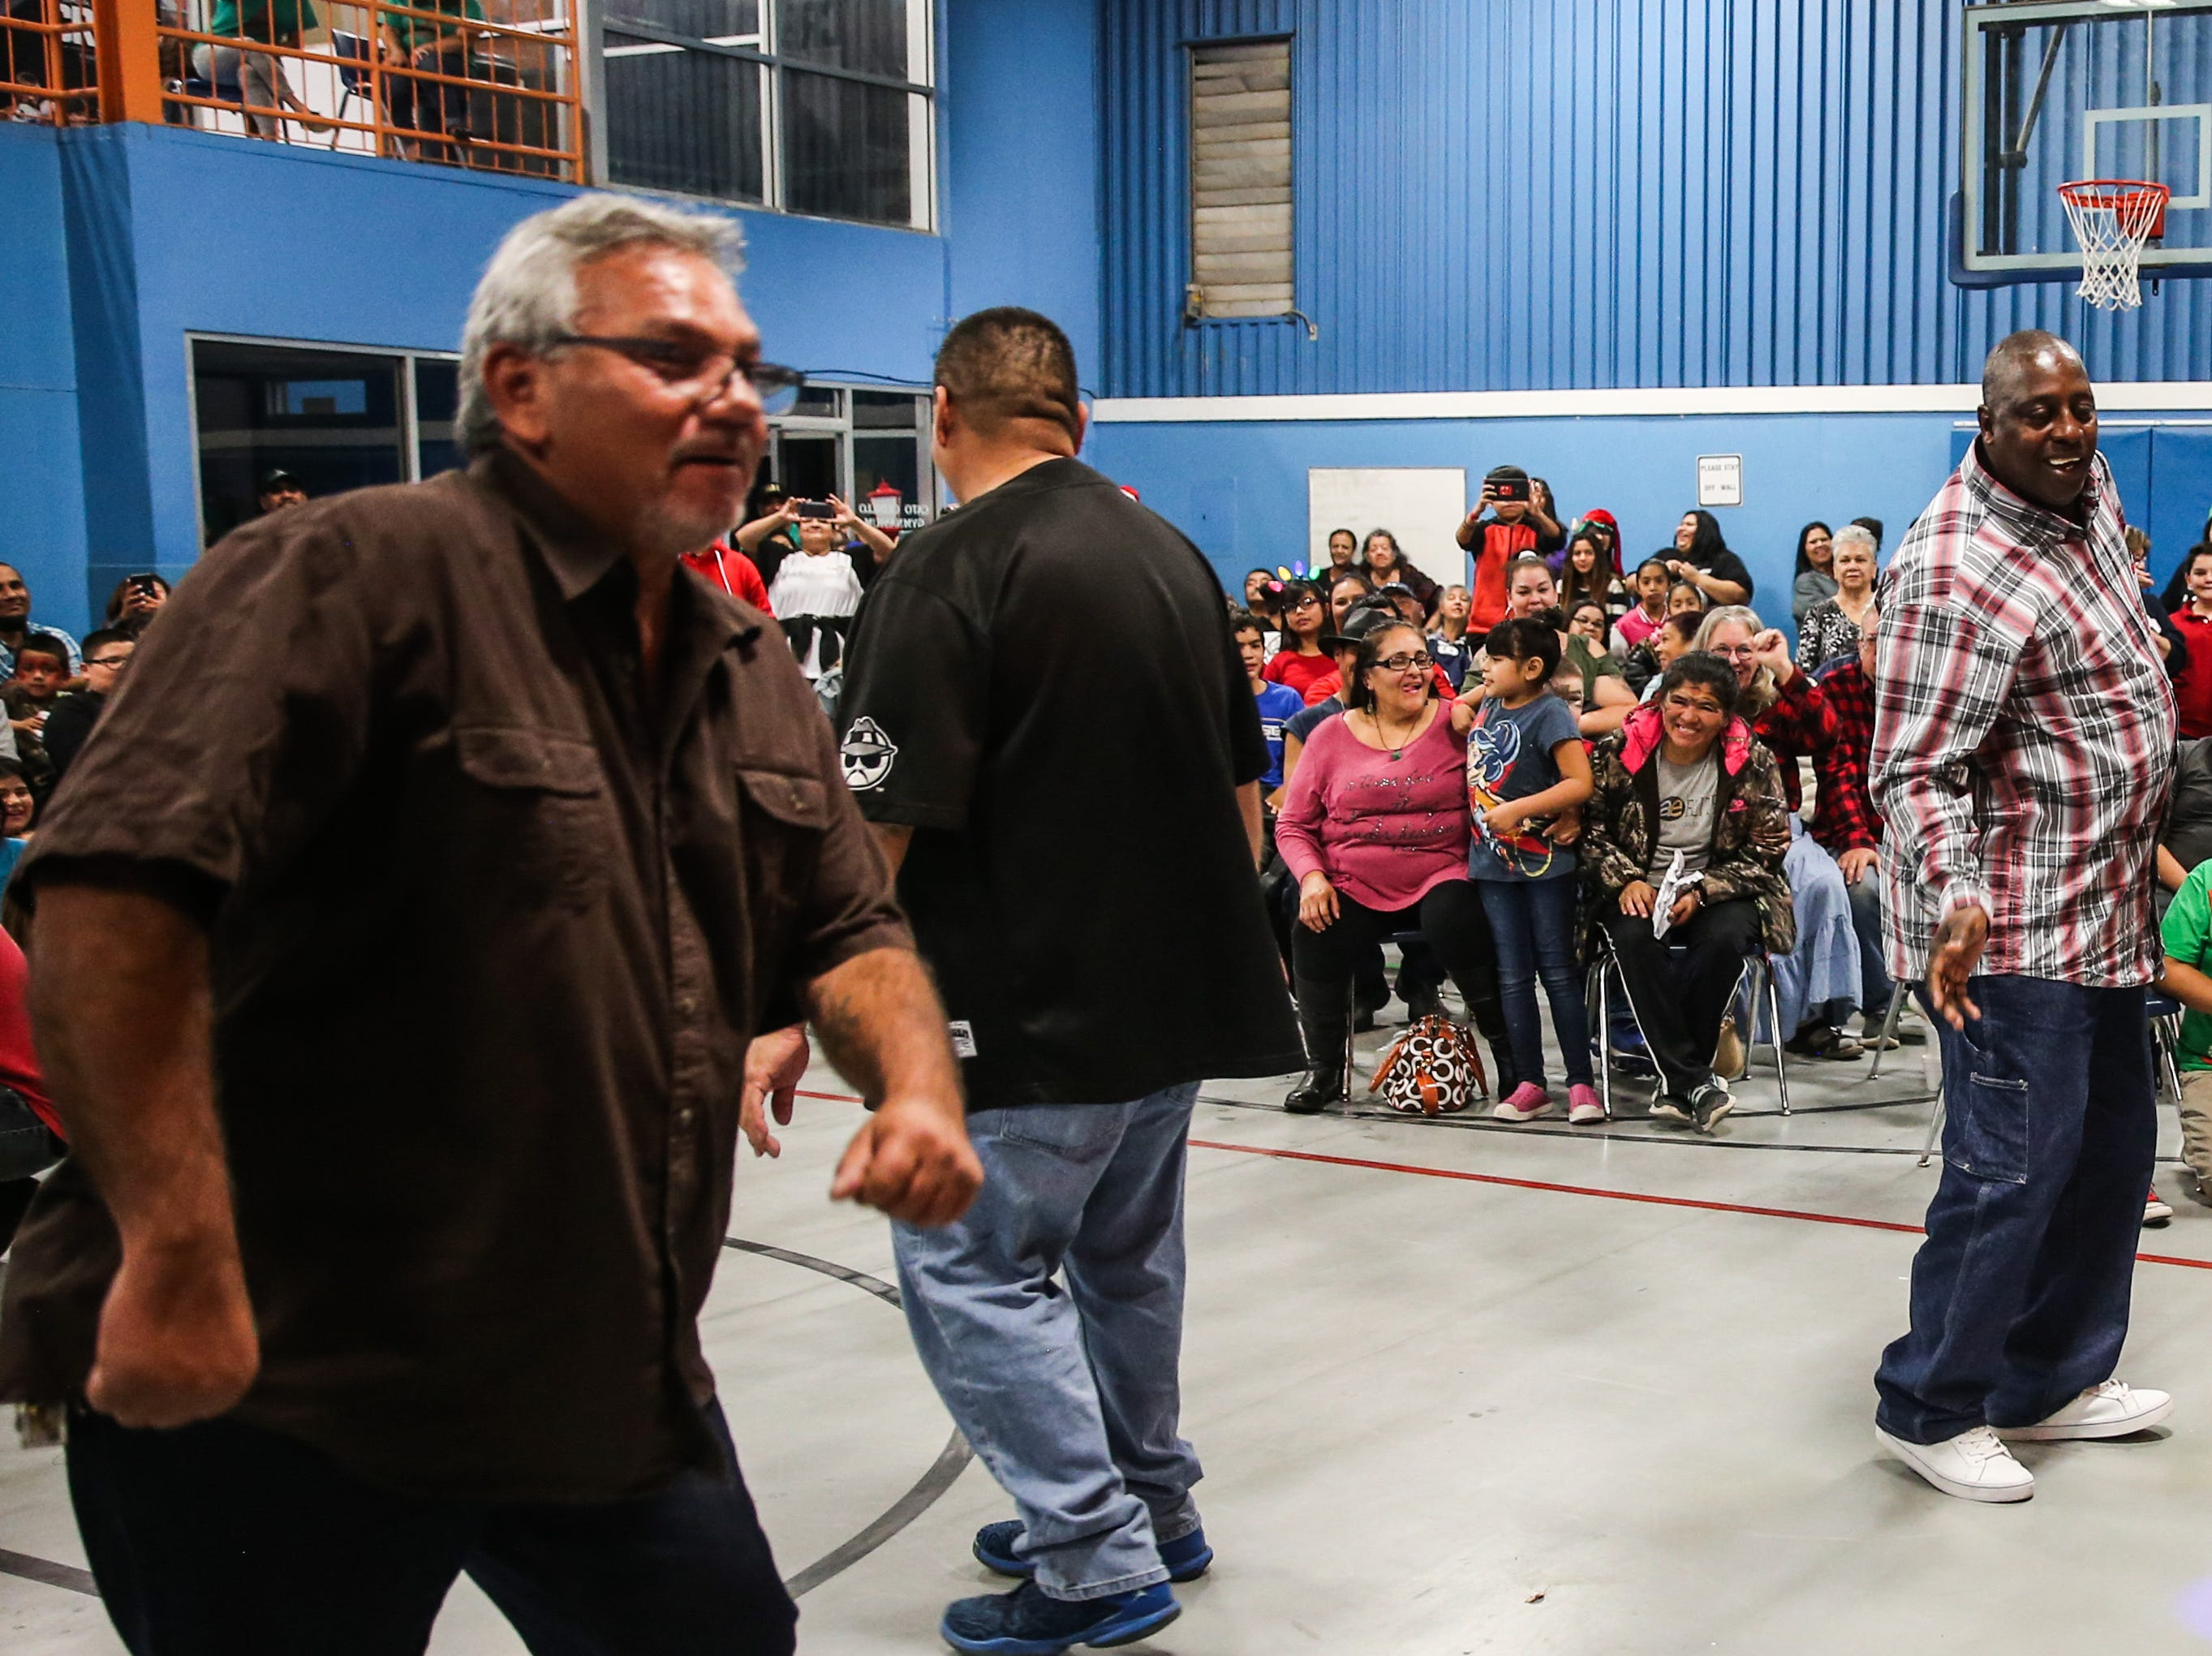 Adults show off their moves in a dance contest during the In the Spirit of Christmas party Saturday, Dec. 15, 2018, at the Southside Recreation Center.